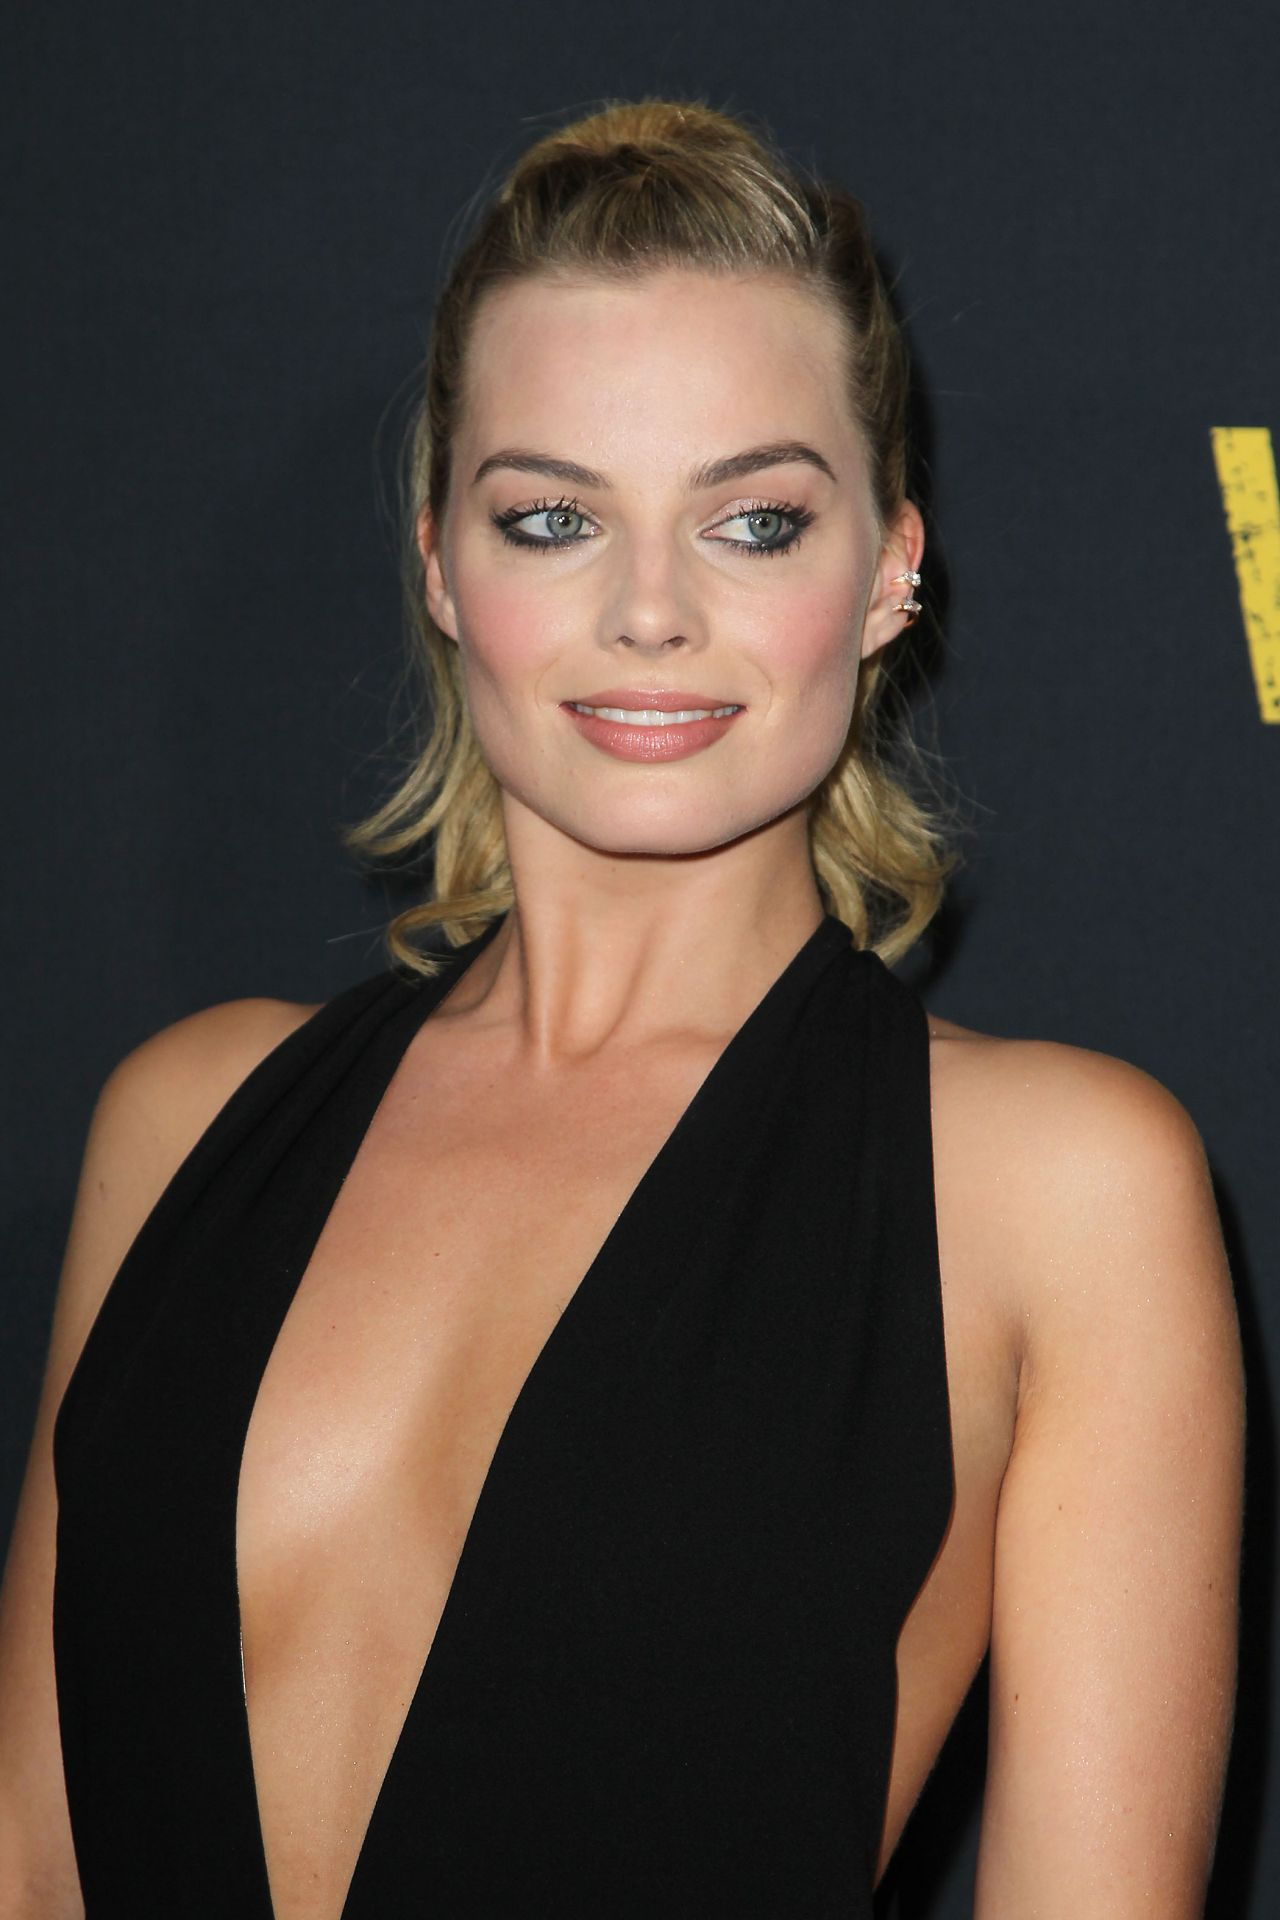 margot-robbie-whiskey-tango-foxtrot-premiere-in-new-york-city-ny-23